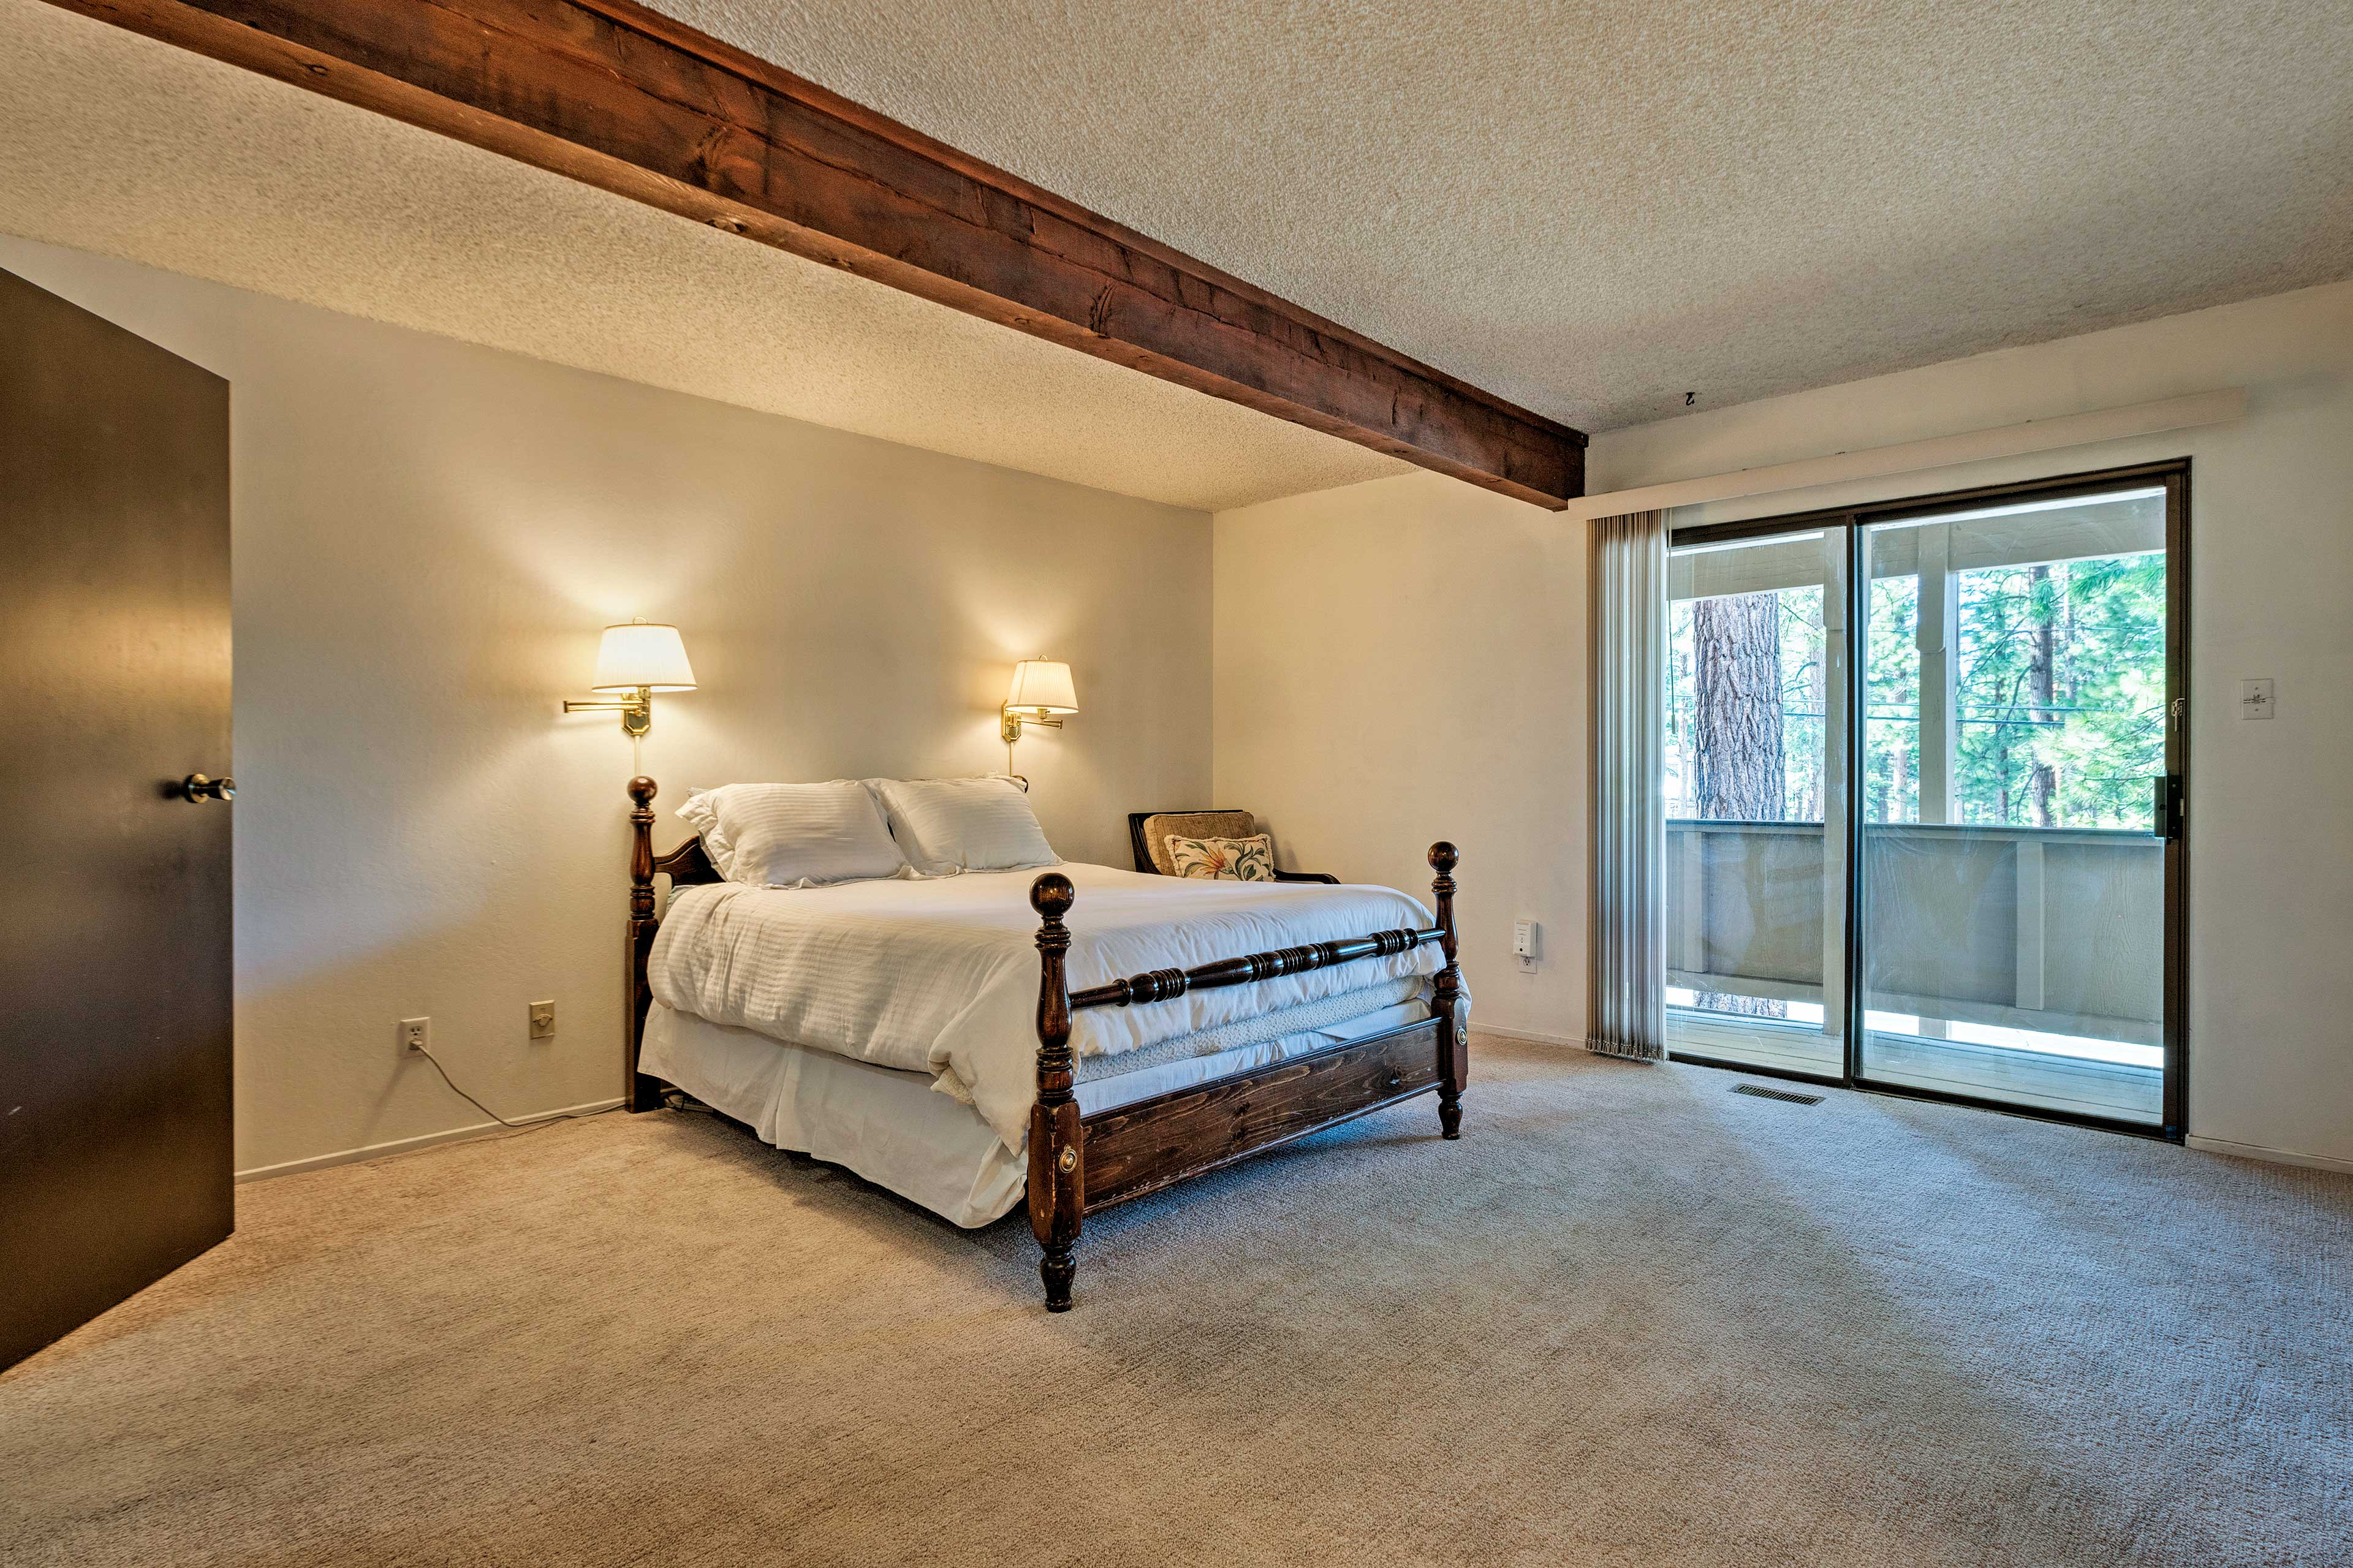 The master bedroom boasts a queen bed and access to the deck.